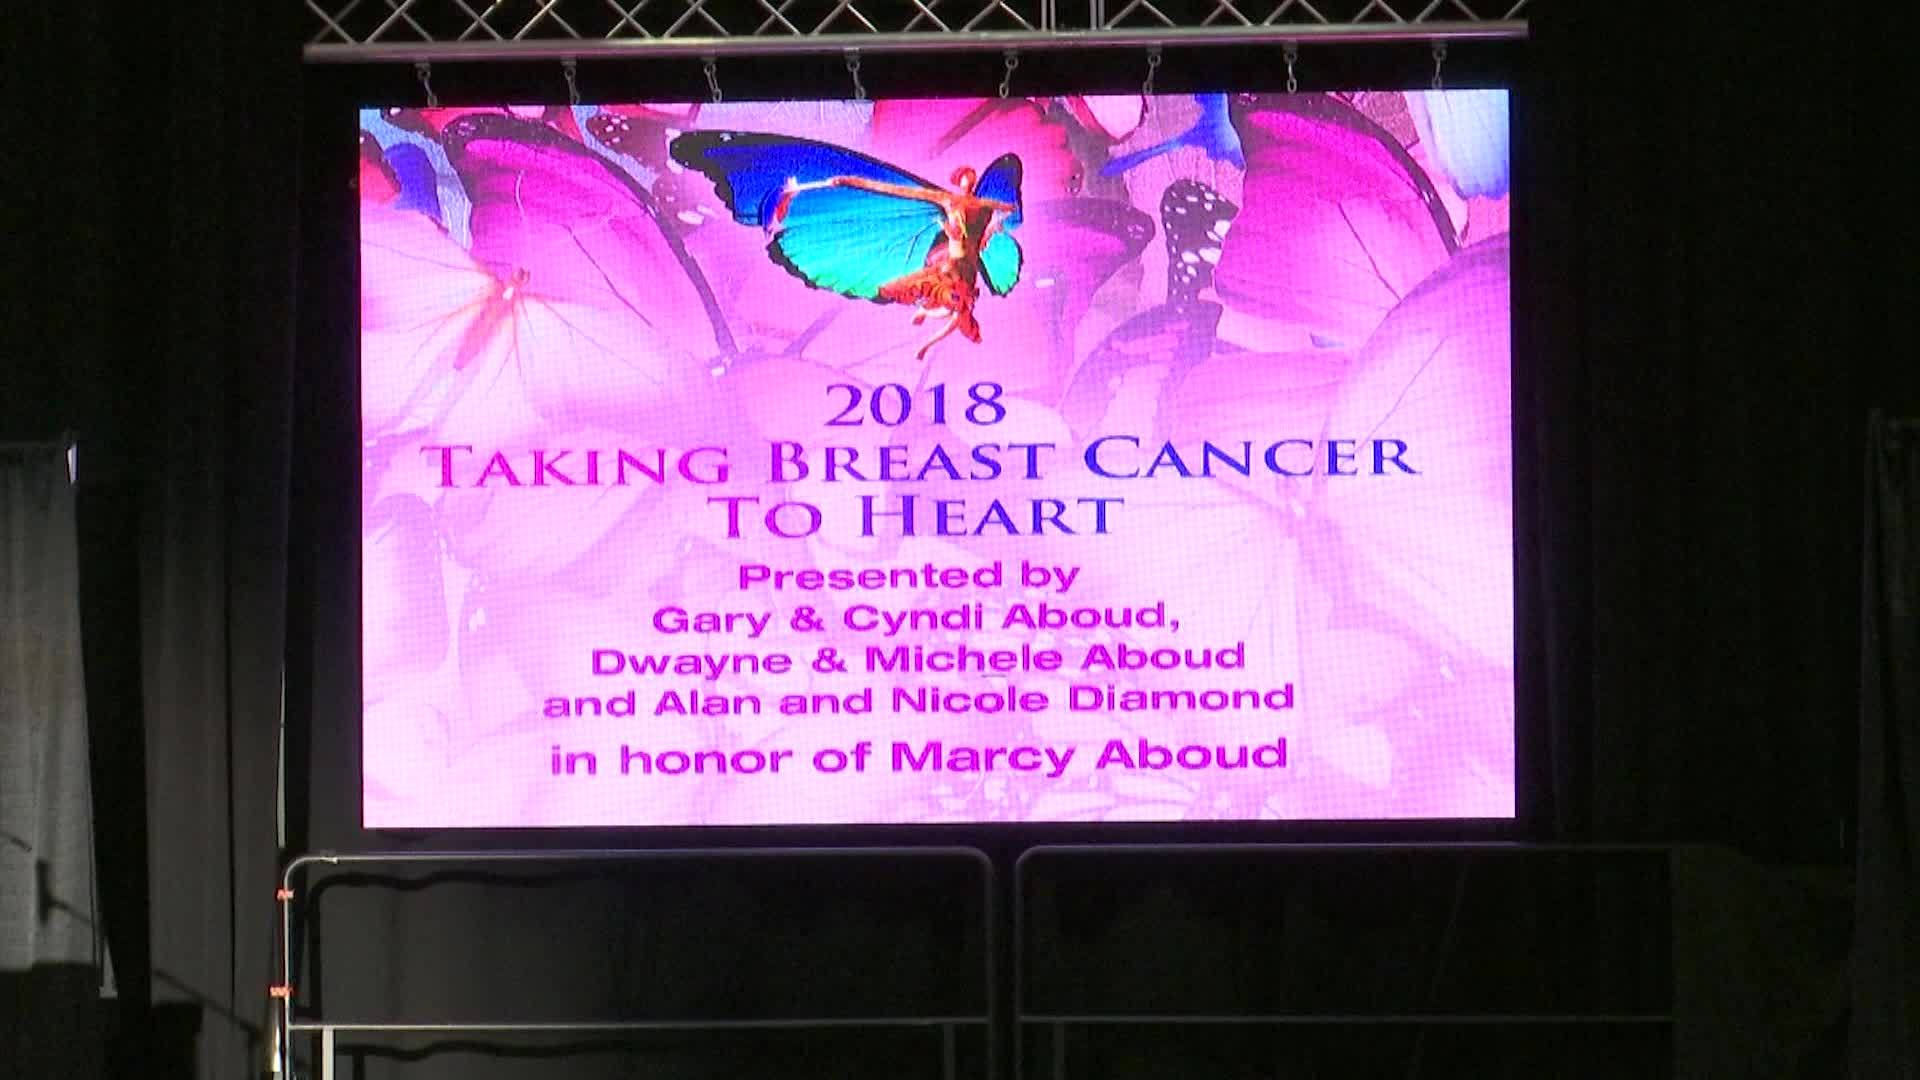 Taking Breast Cancer to Heart